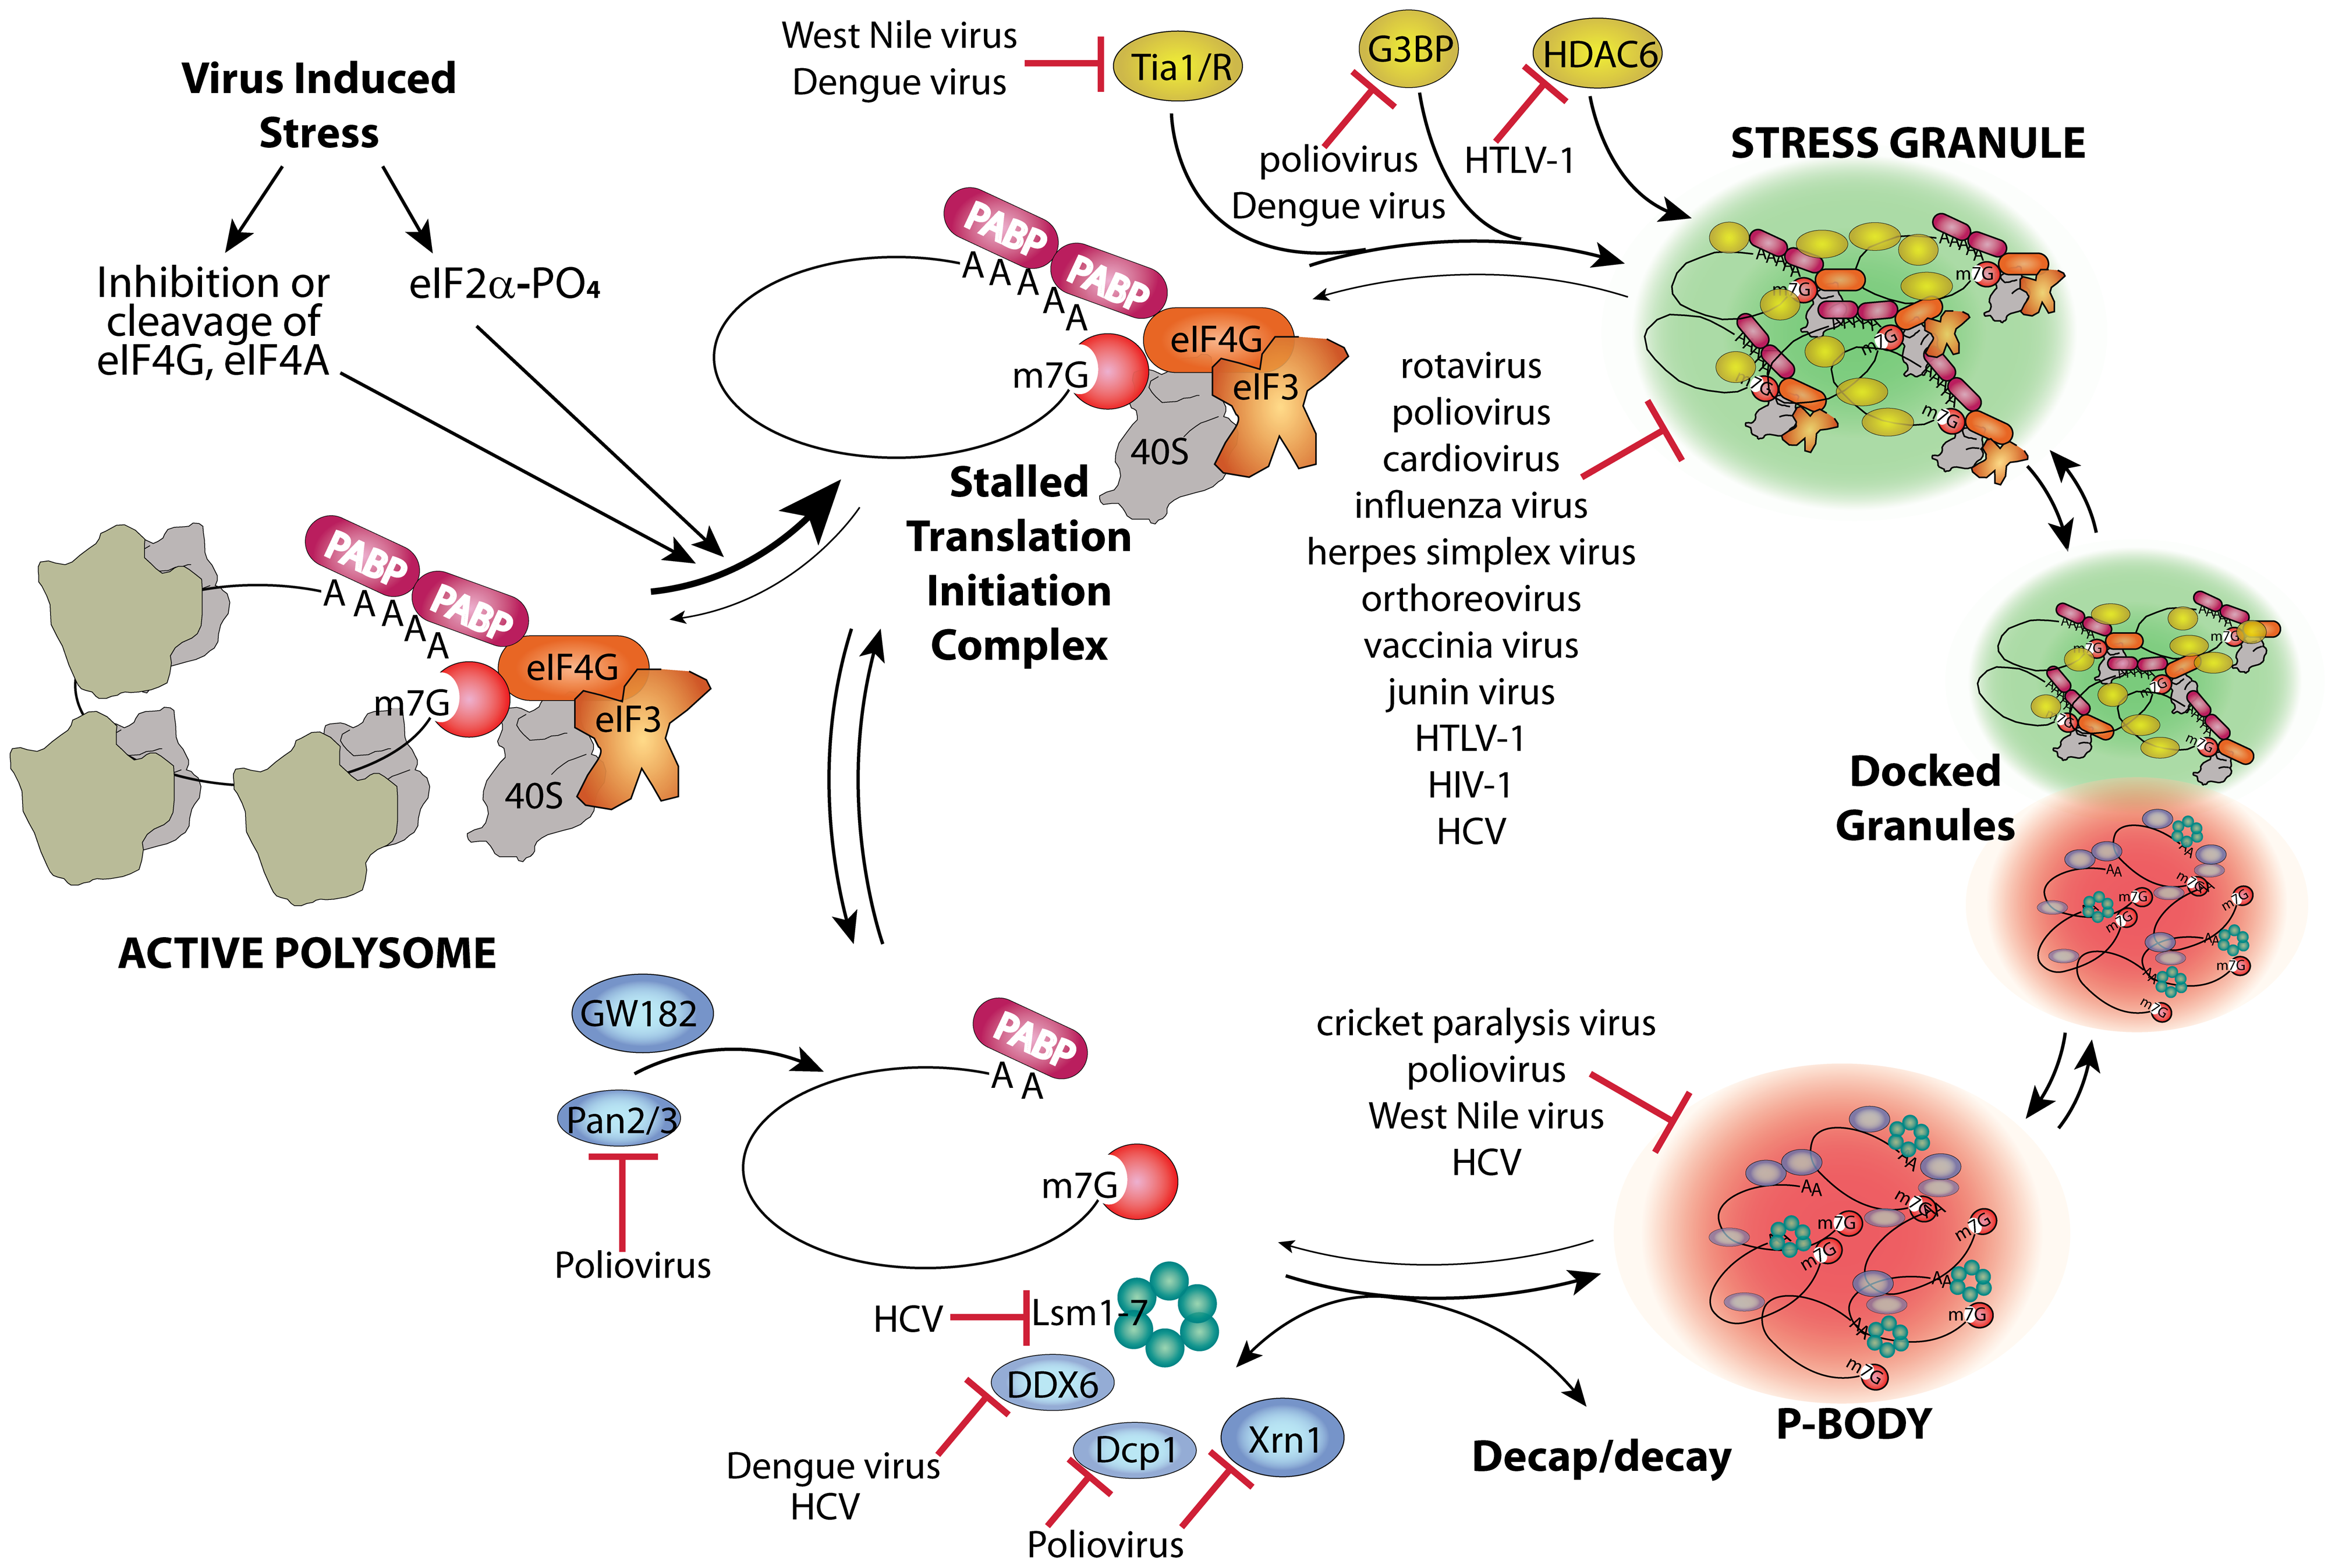 Stress granule and P-body assembly and interference by viruses.